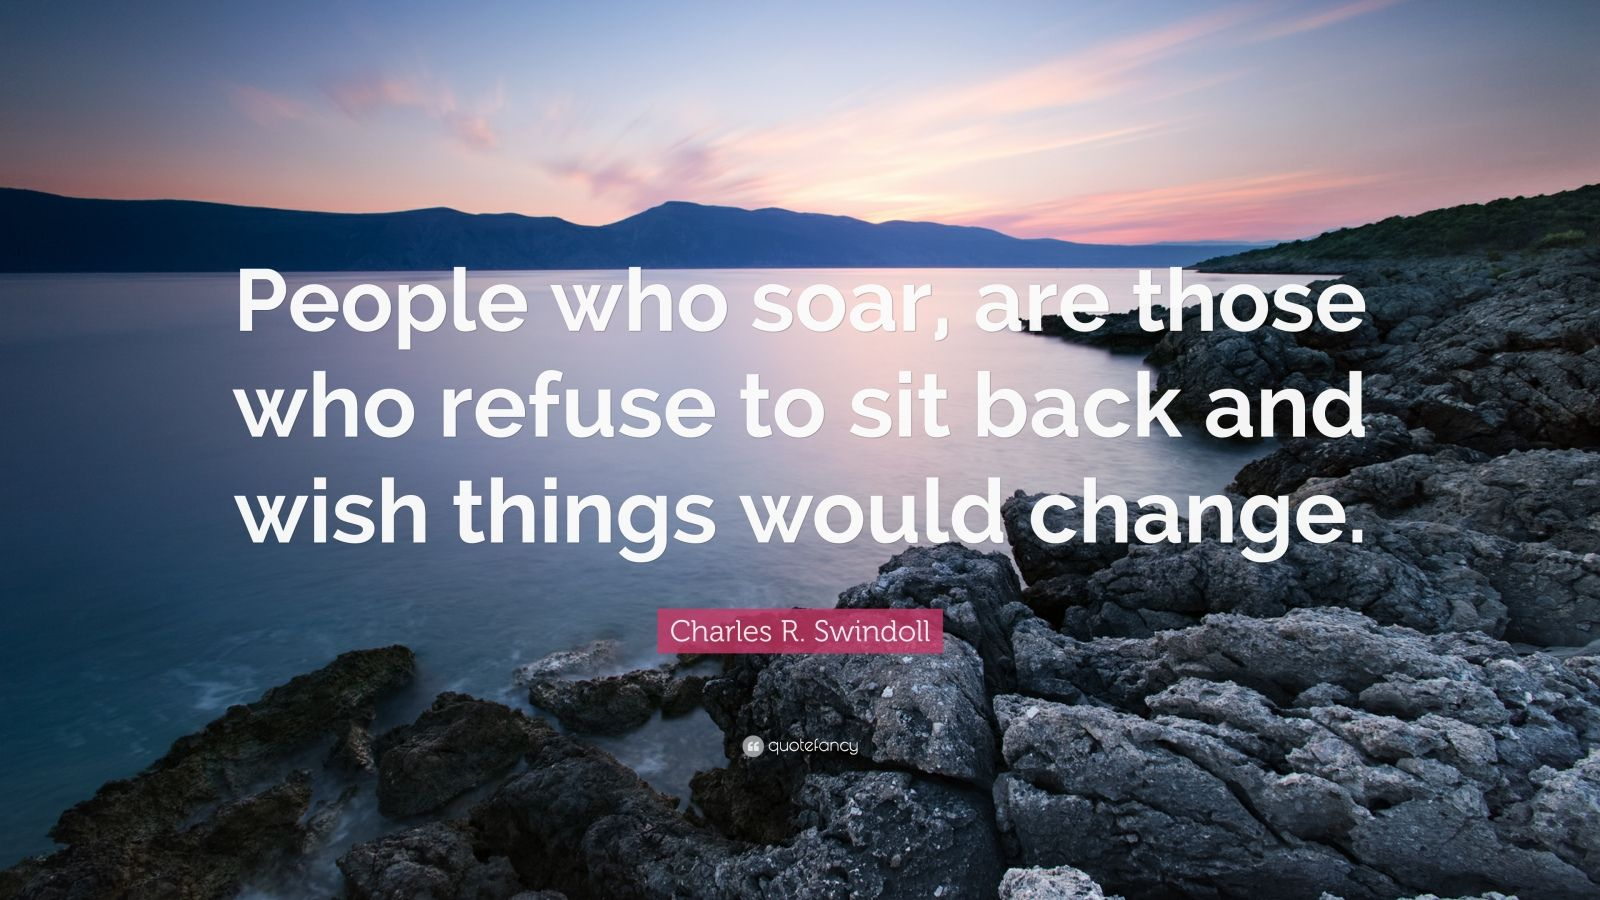 """Charles R. Swindoll Quote: """"People who soar, are those who refuse to sit back and wish things would change."""""""